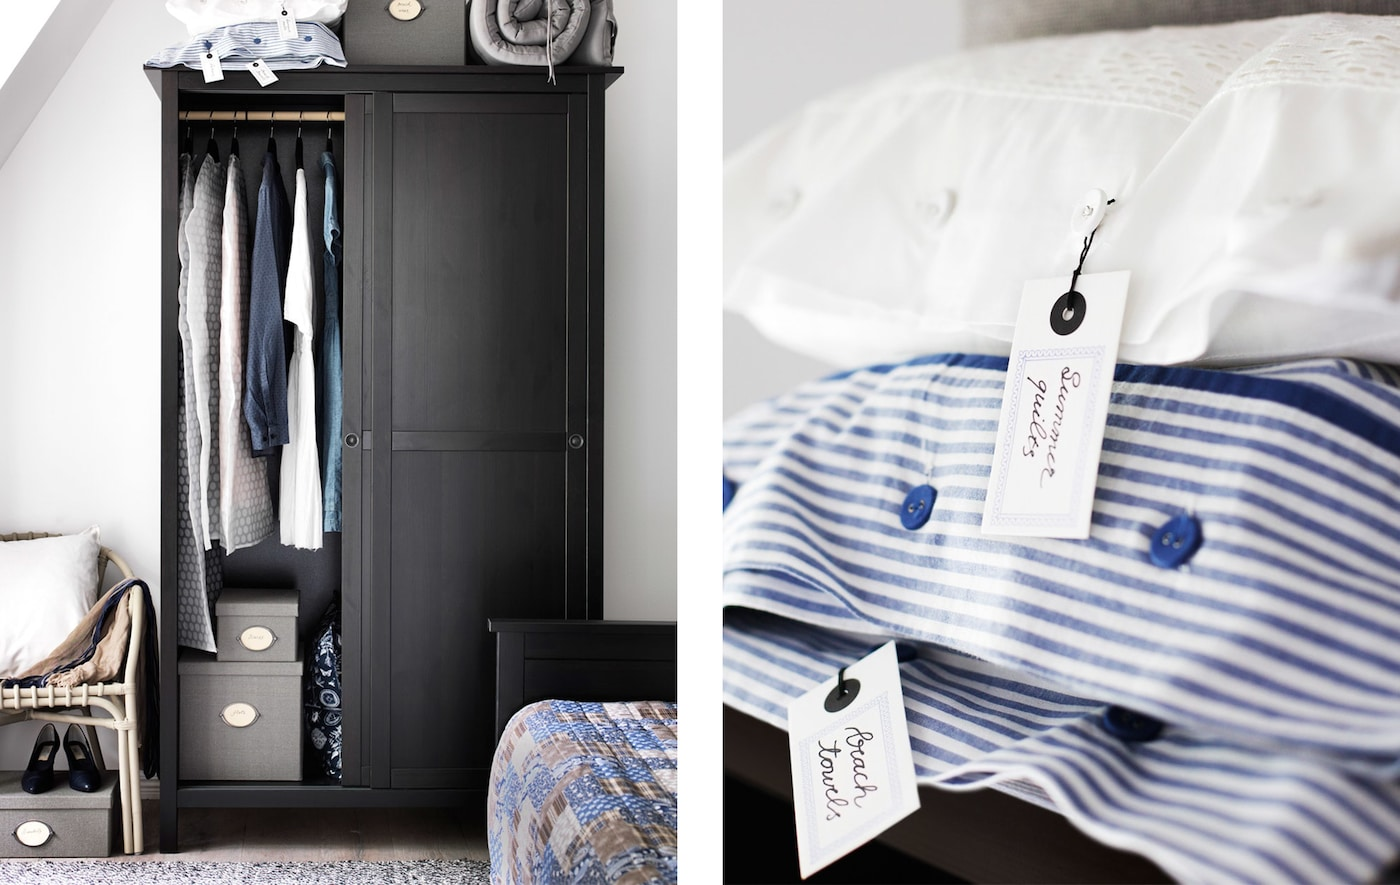 A black rustic style wooden wardrobe in the corner of a bedroom filled with clothes will storage boxes and bedding stacked on top next to an image of a close-up of some white and blue and white stripped pillow cases.